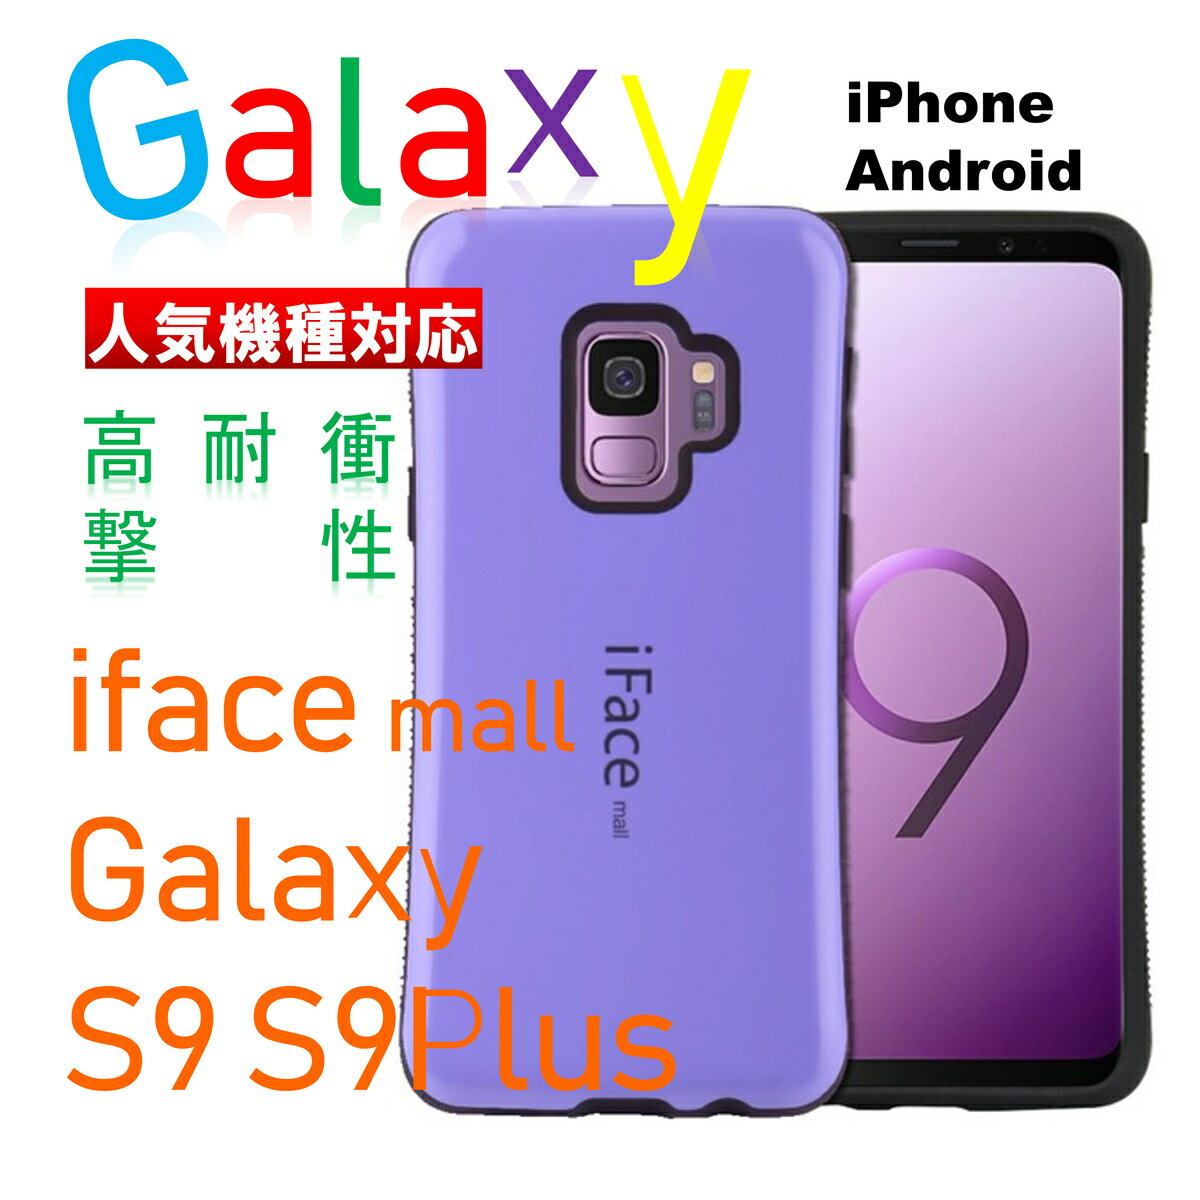 全商品2点ご購入500円OFF ポイント5倍【送料無料】iface mallifacemalliFace mall for Samsung Galaxy S9S9 Plus スマホケース Galaxy S7 Edge Galaxy S8カバー S6 Galaxy S6 Edge Galaxy Note8 Note9 note 8 note 9 ケース かわいい